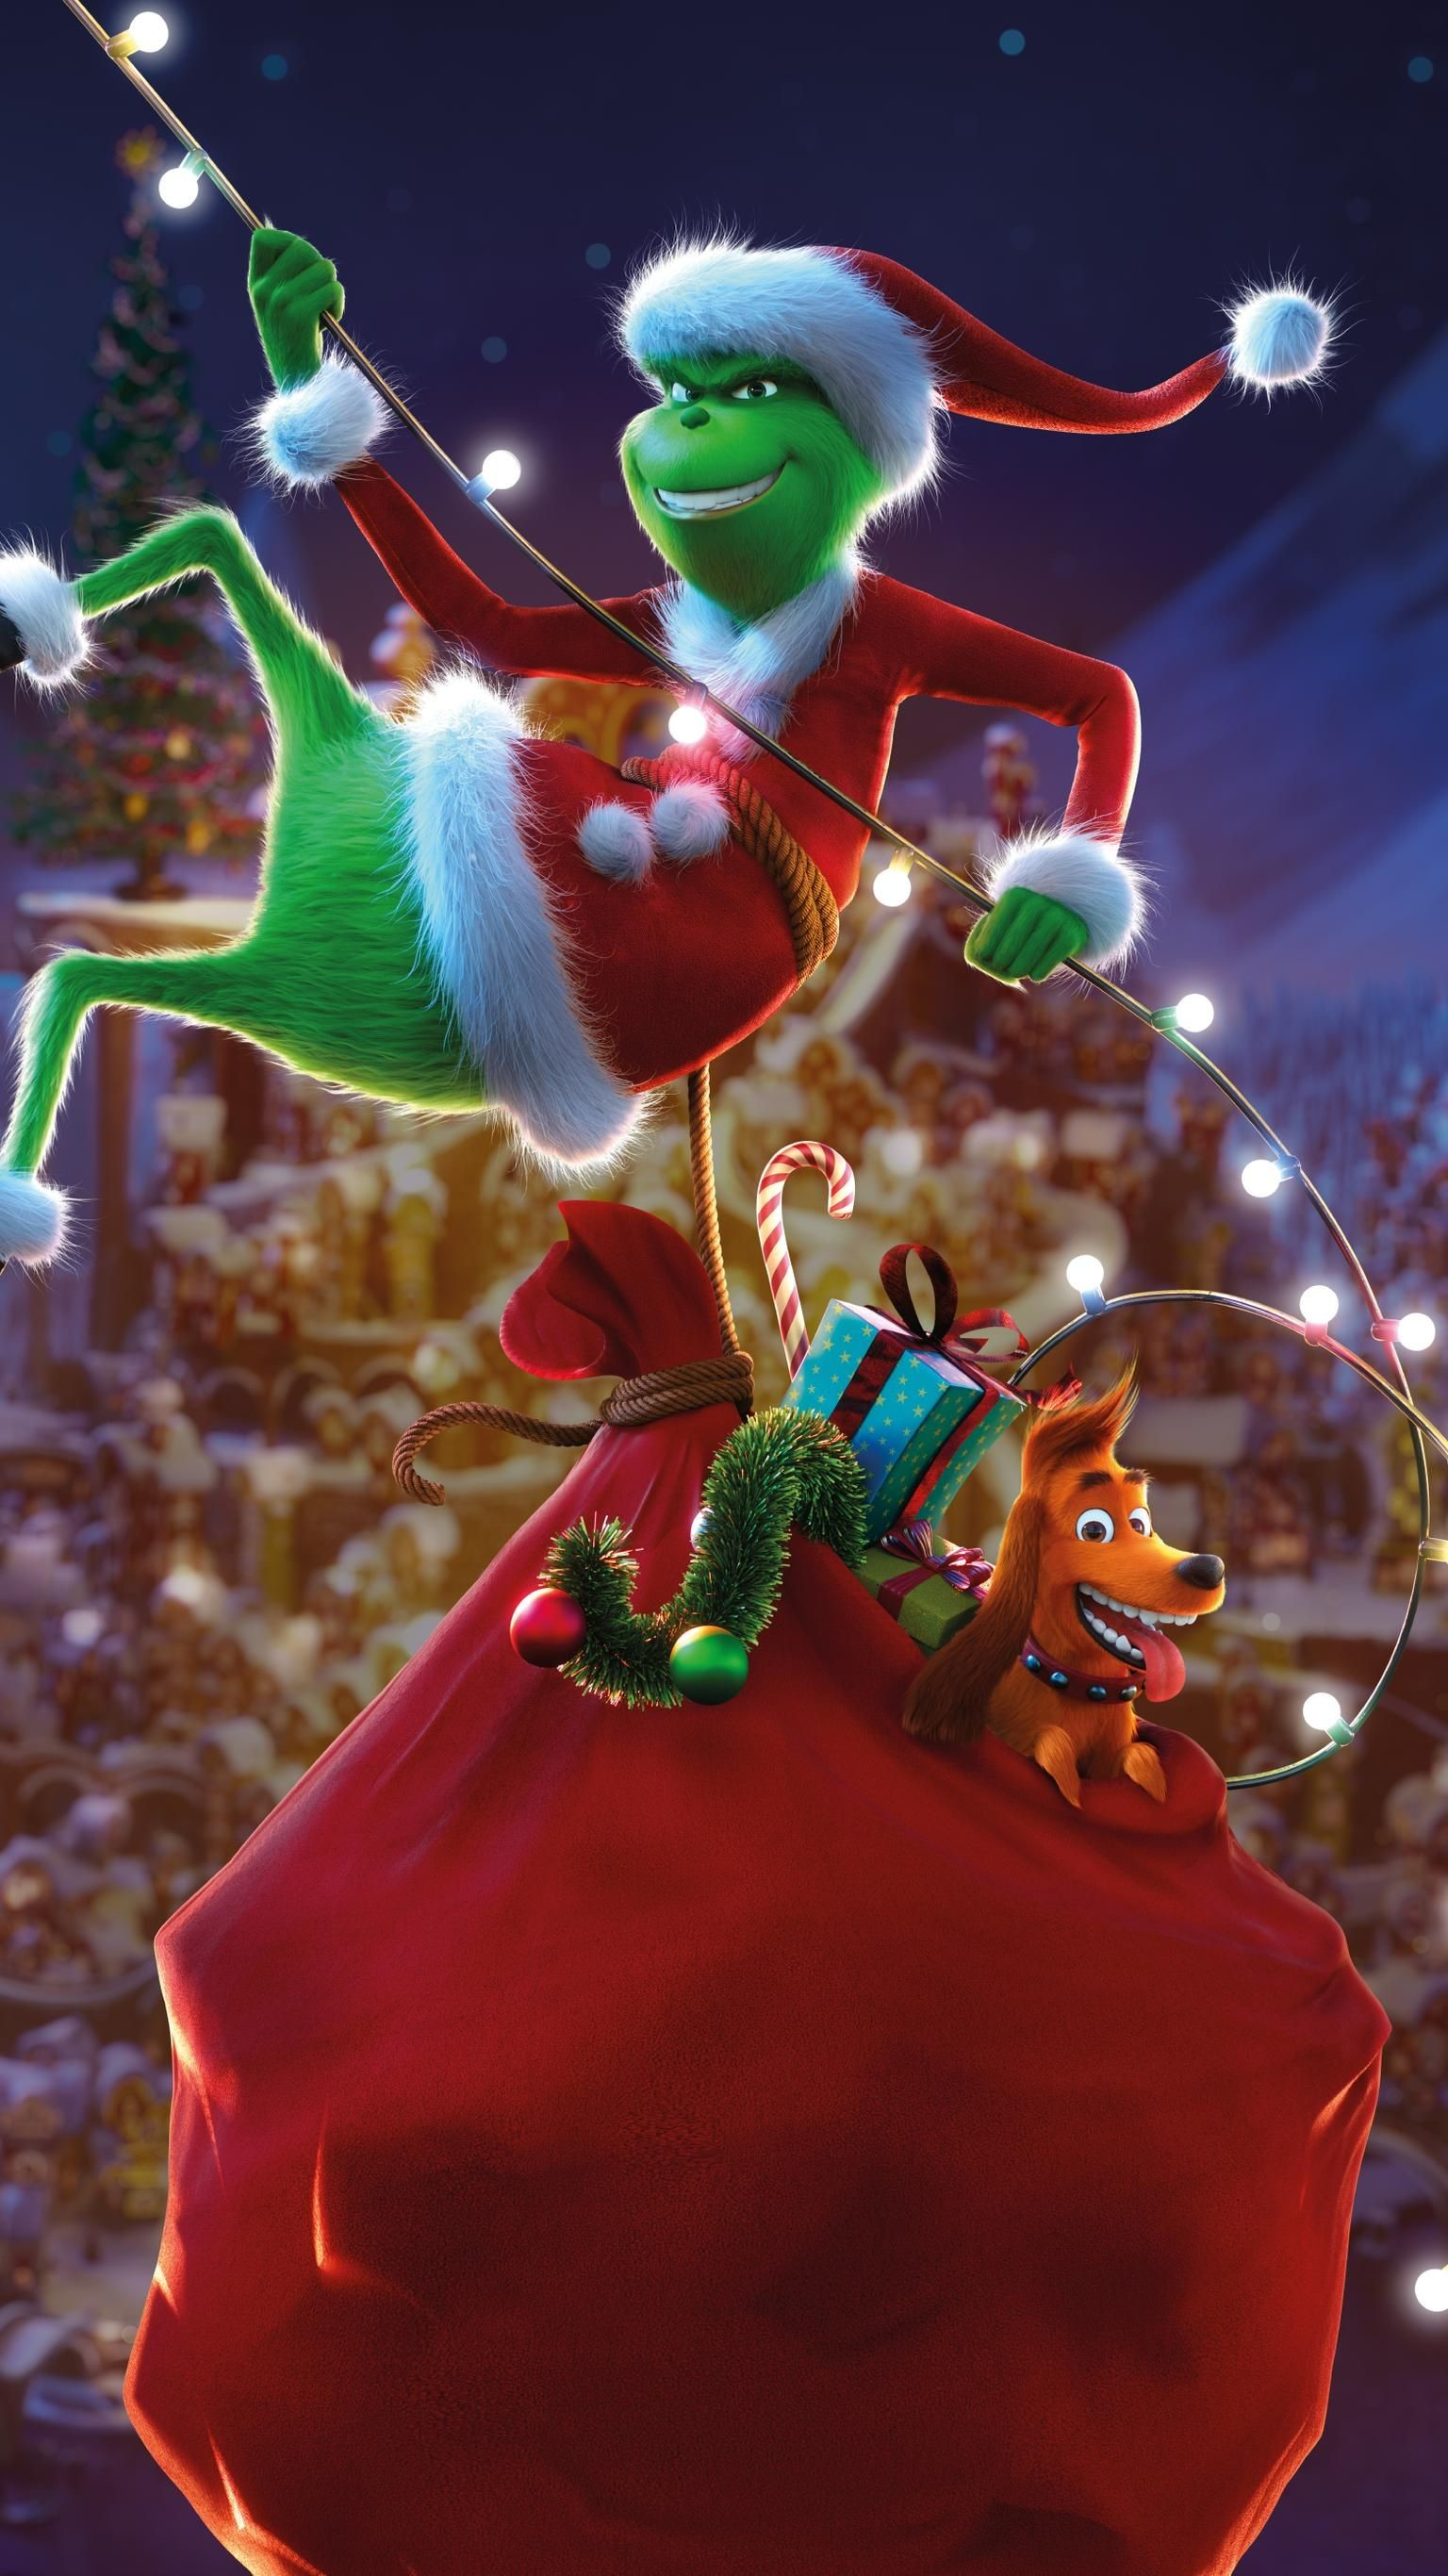 Christmas Wallpaper the Grinch 73 images 1536x2732